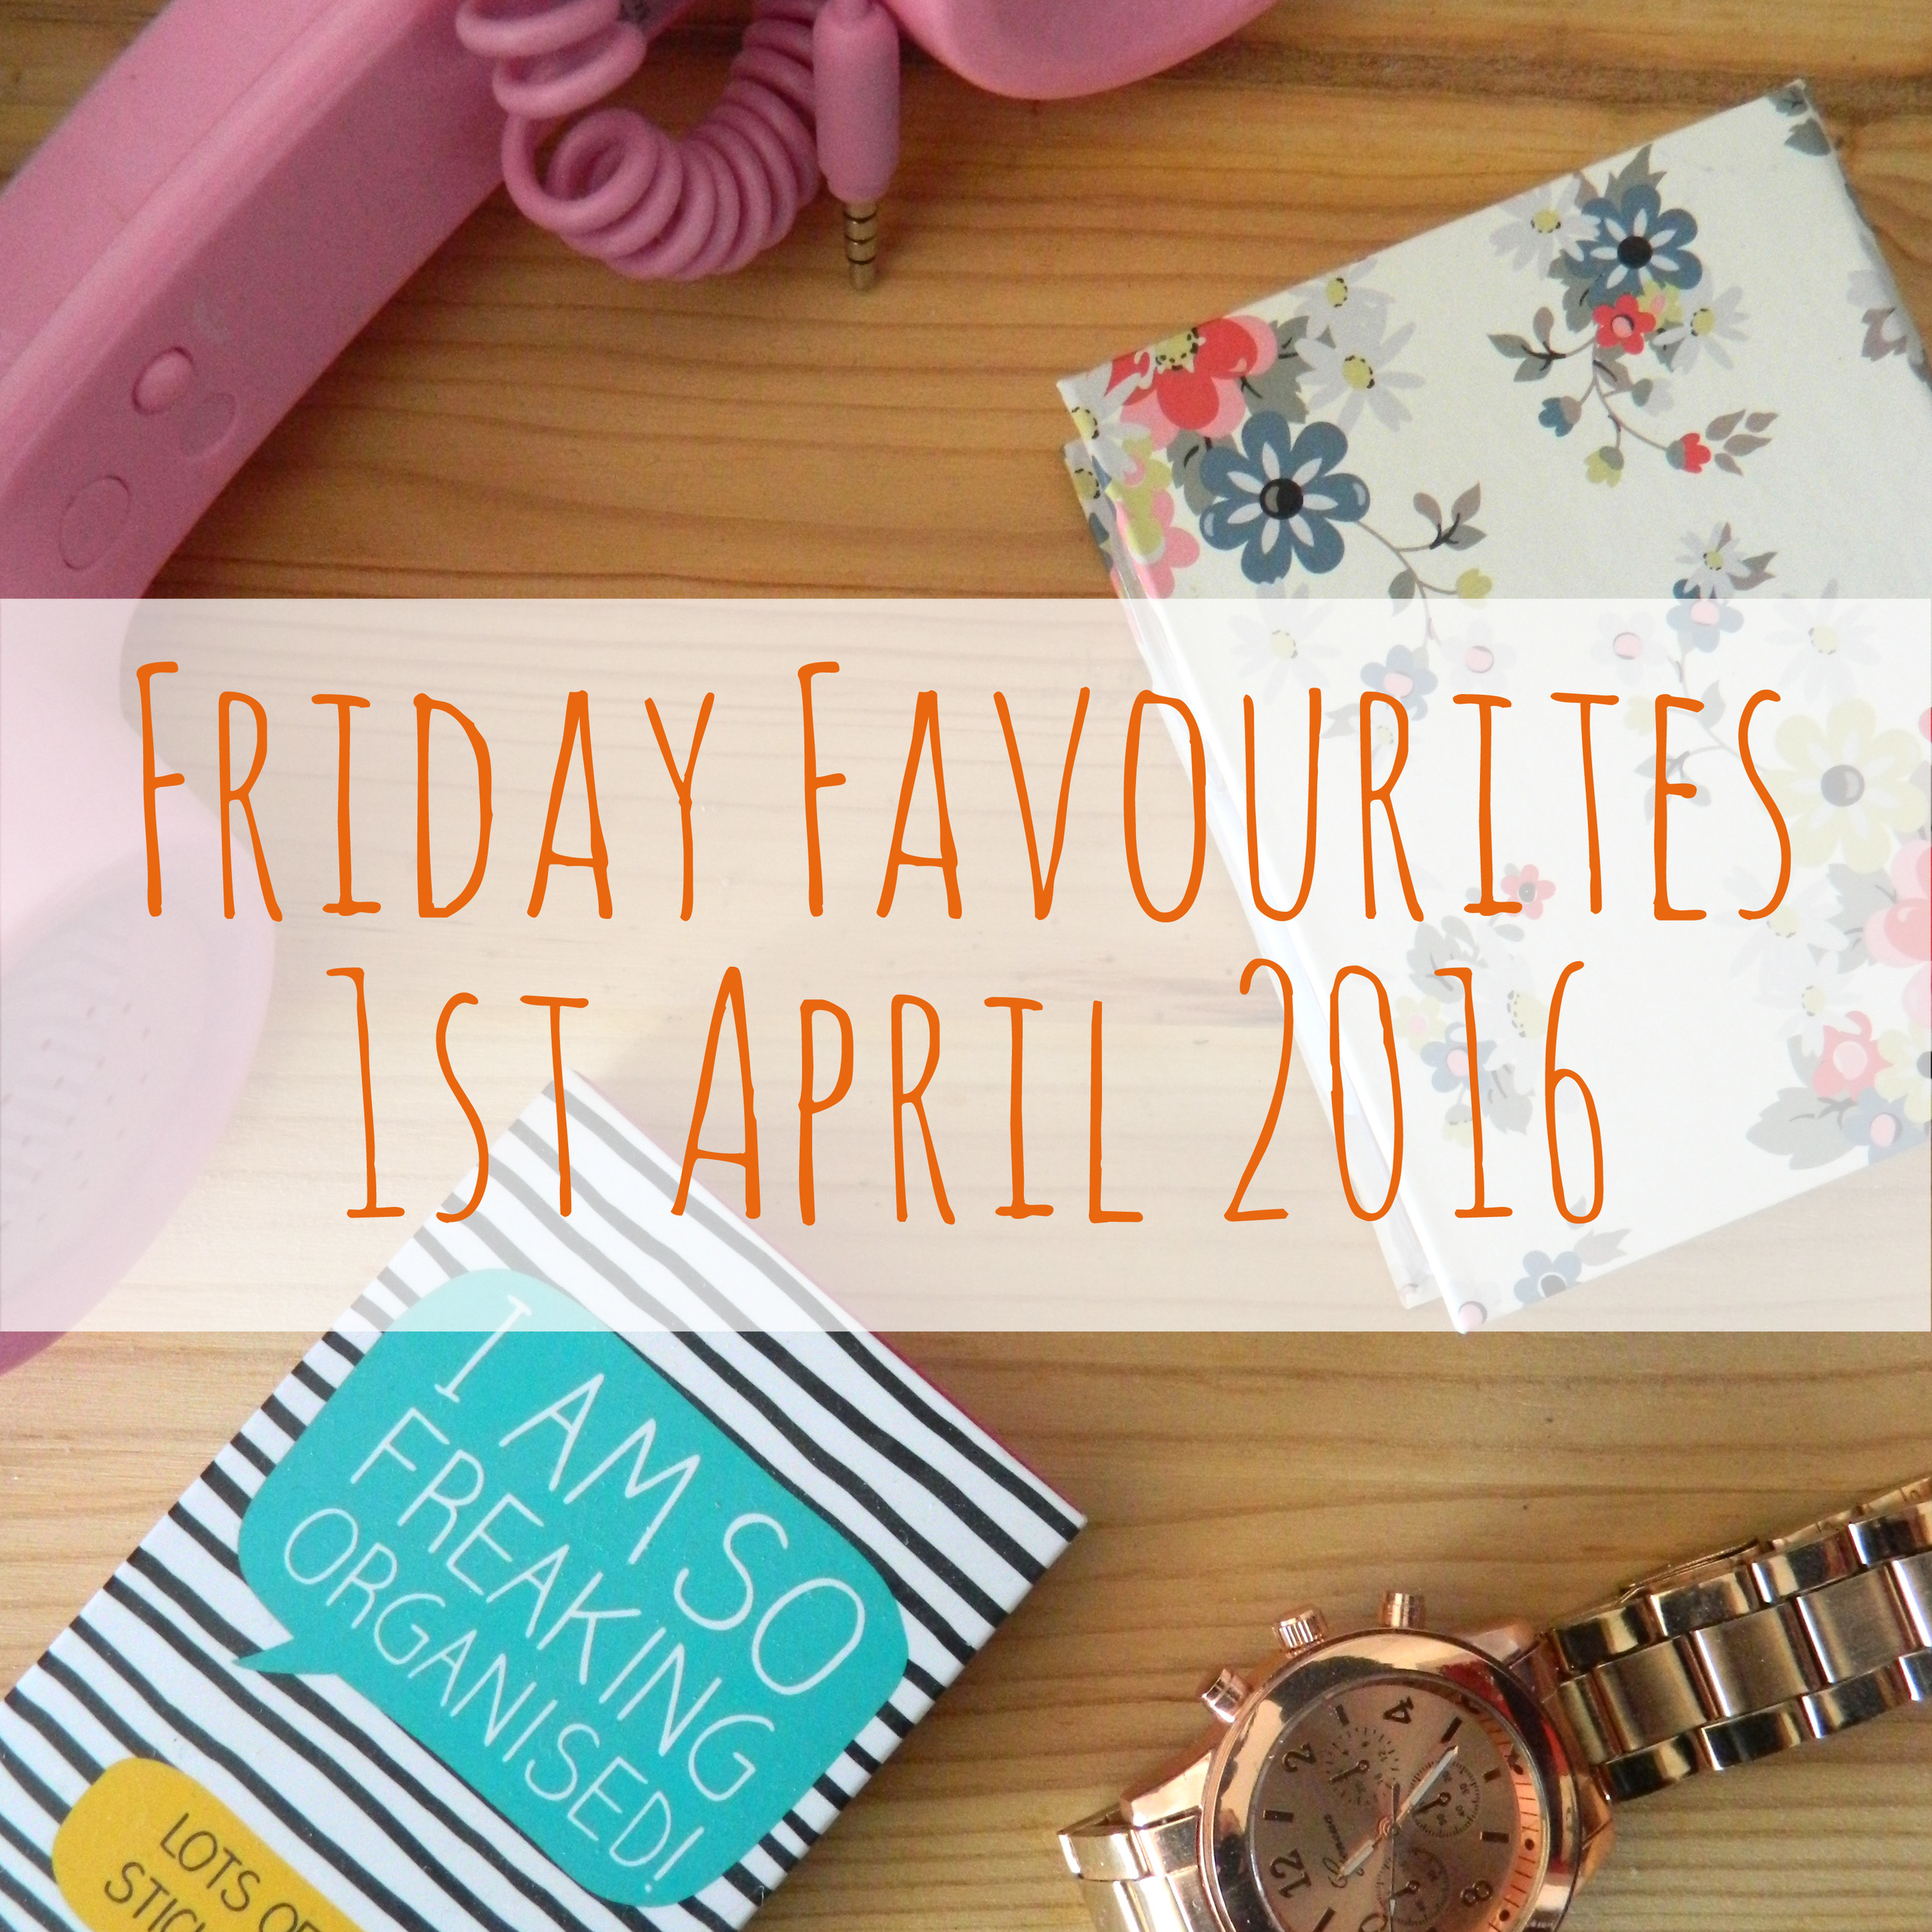 Friday Favourite promo flatlay - 01.04.16